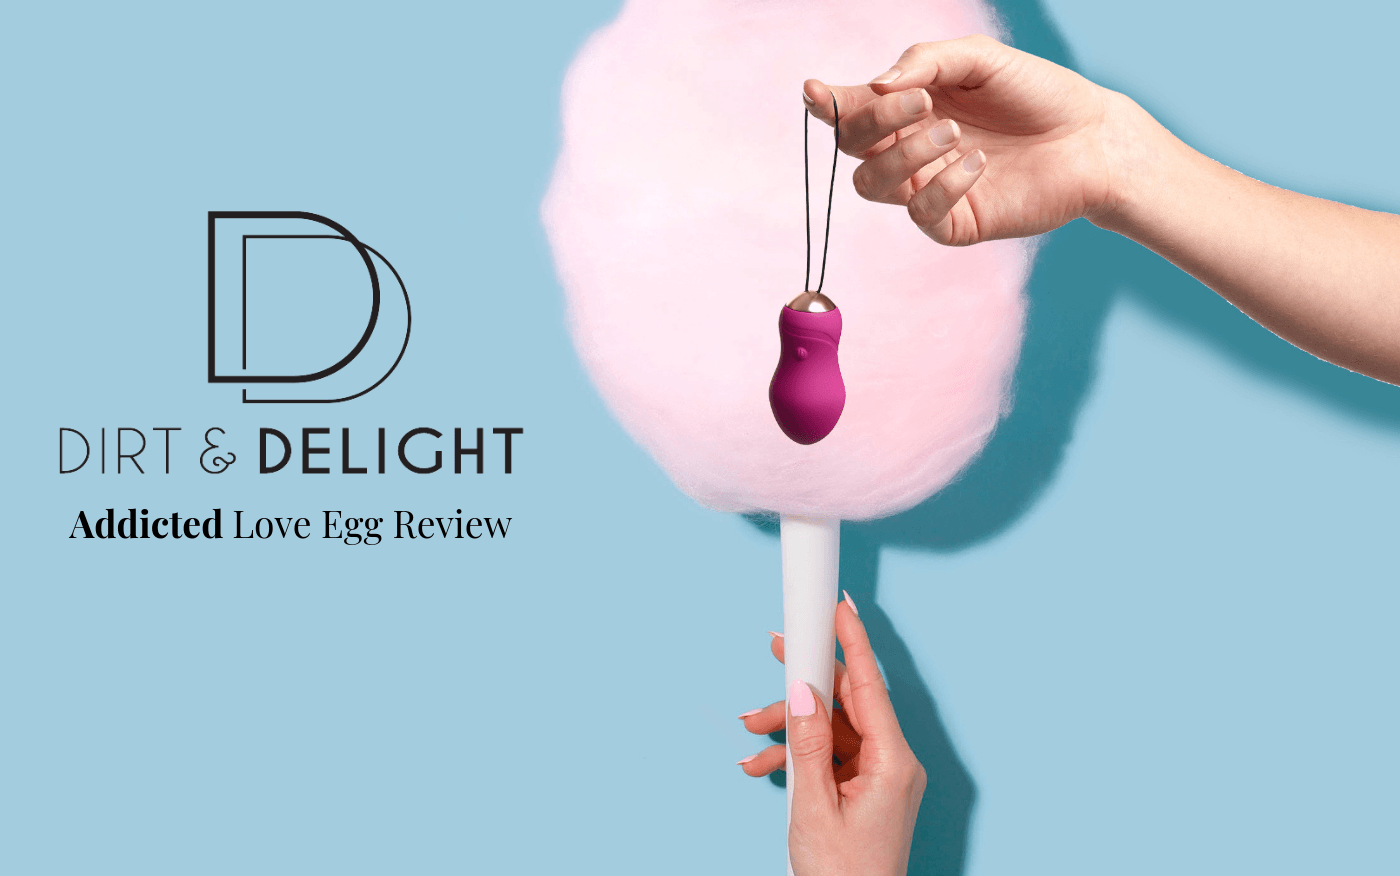 Dirt & Delight 'Addicted' Love Egg Review